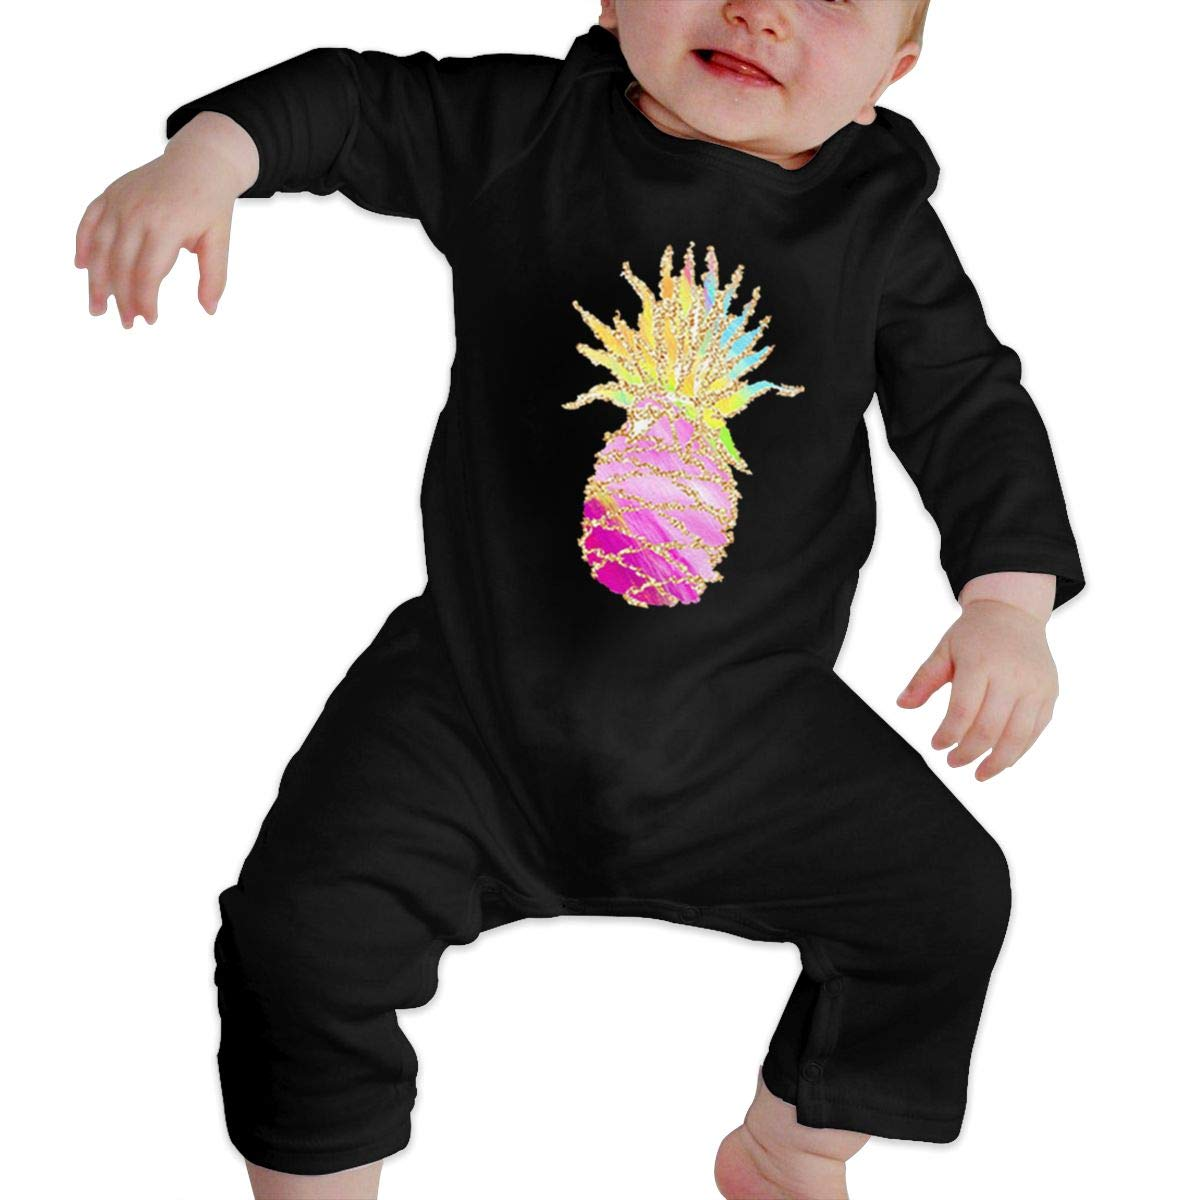 Colorful Pineapple Unisex Long Sleeve Baby Gown Baby Bodysuit Unionsuit Footed Pajamas Romper Jumpsuit